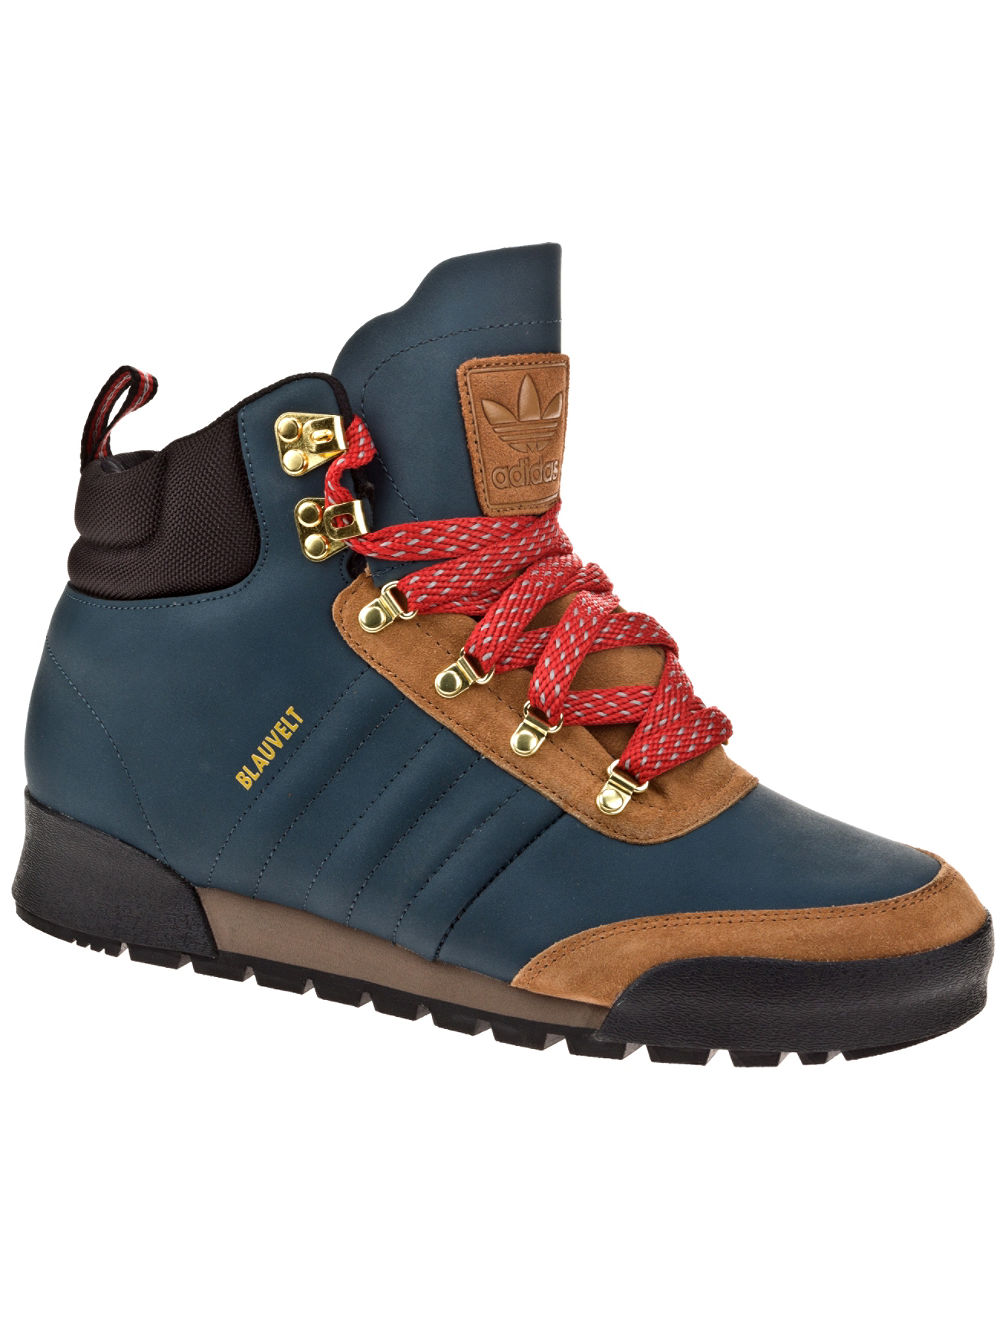 half off baf4d aabe2 adidas Snowboarding Jake 2.0 Boot Shoes